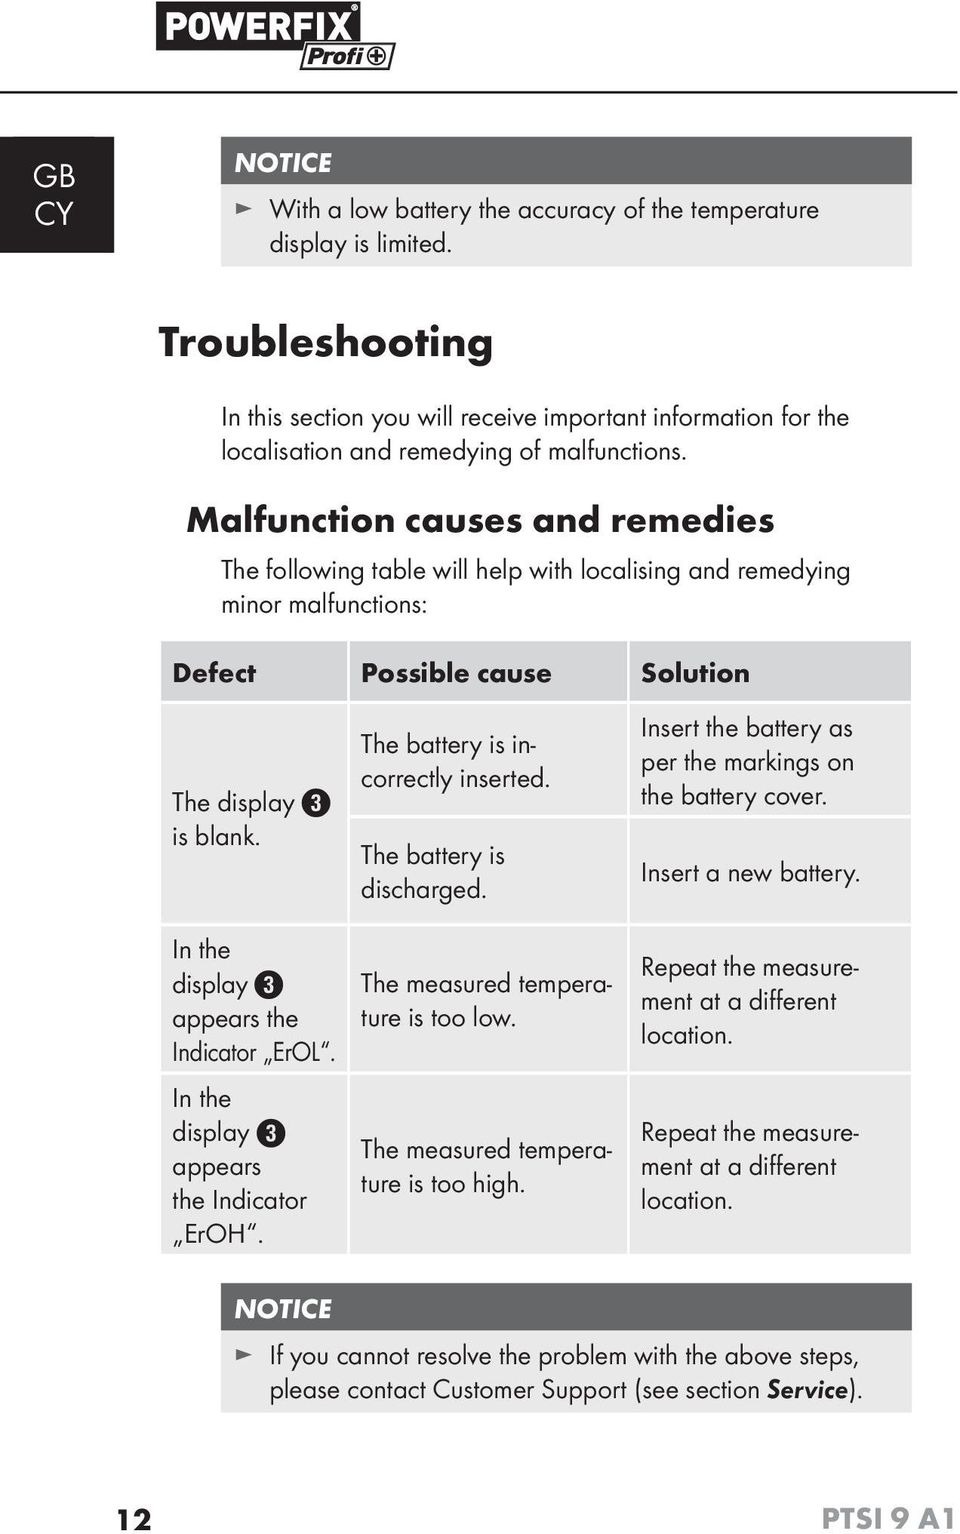 Malfunction causes and remedies The following table will help with localising and remedying minor malfunctions: Defect Possible cause Solution The display is blank.